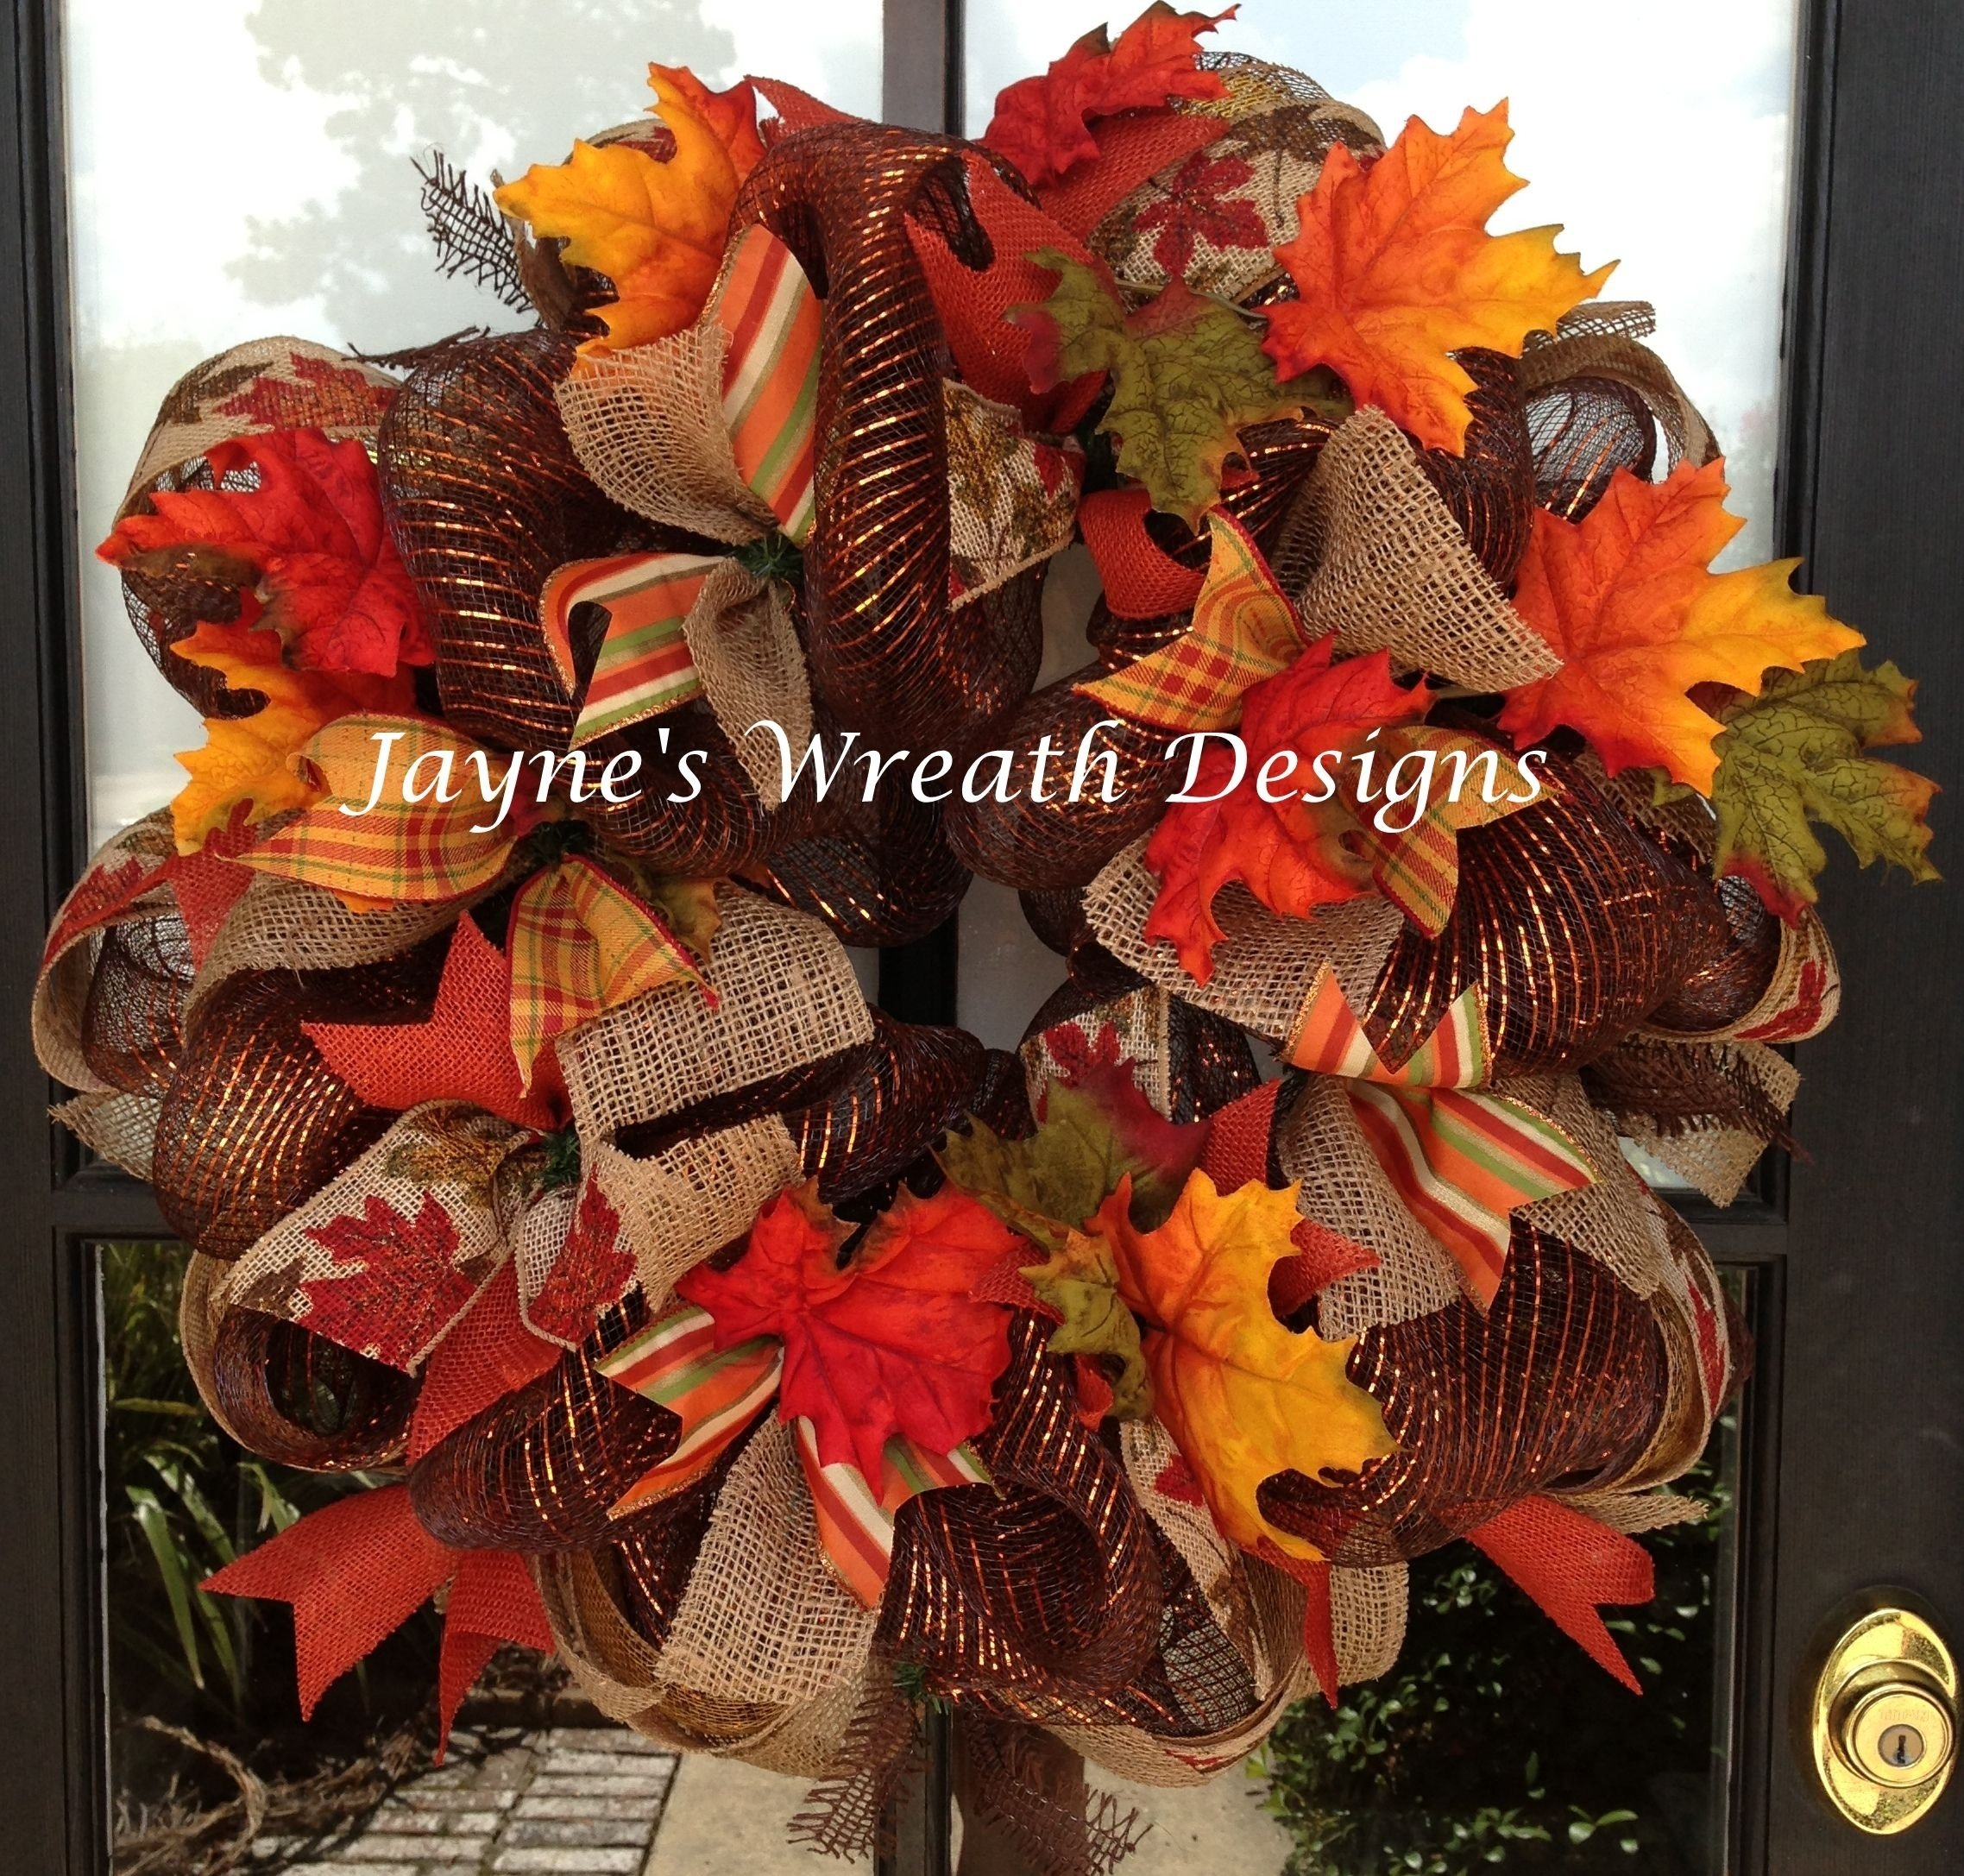 10 Attractive Deco Mesh Fall Wreath Ideas fall wreaths with fall leaves deco mesh burlap and multiple